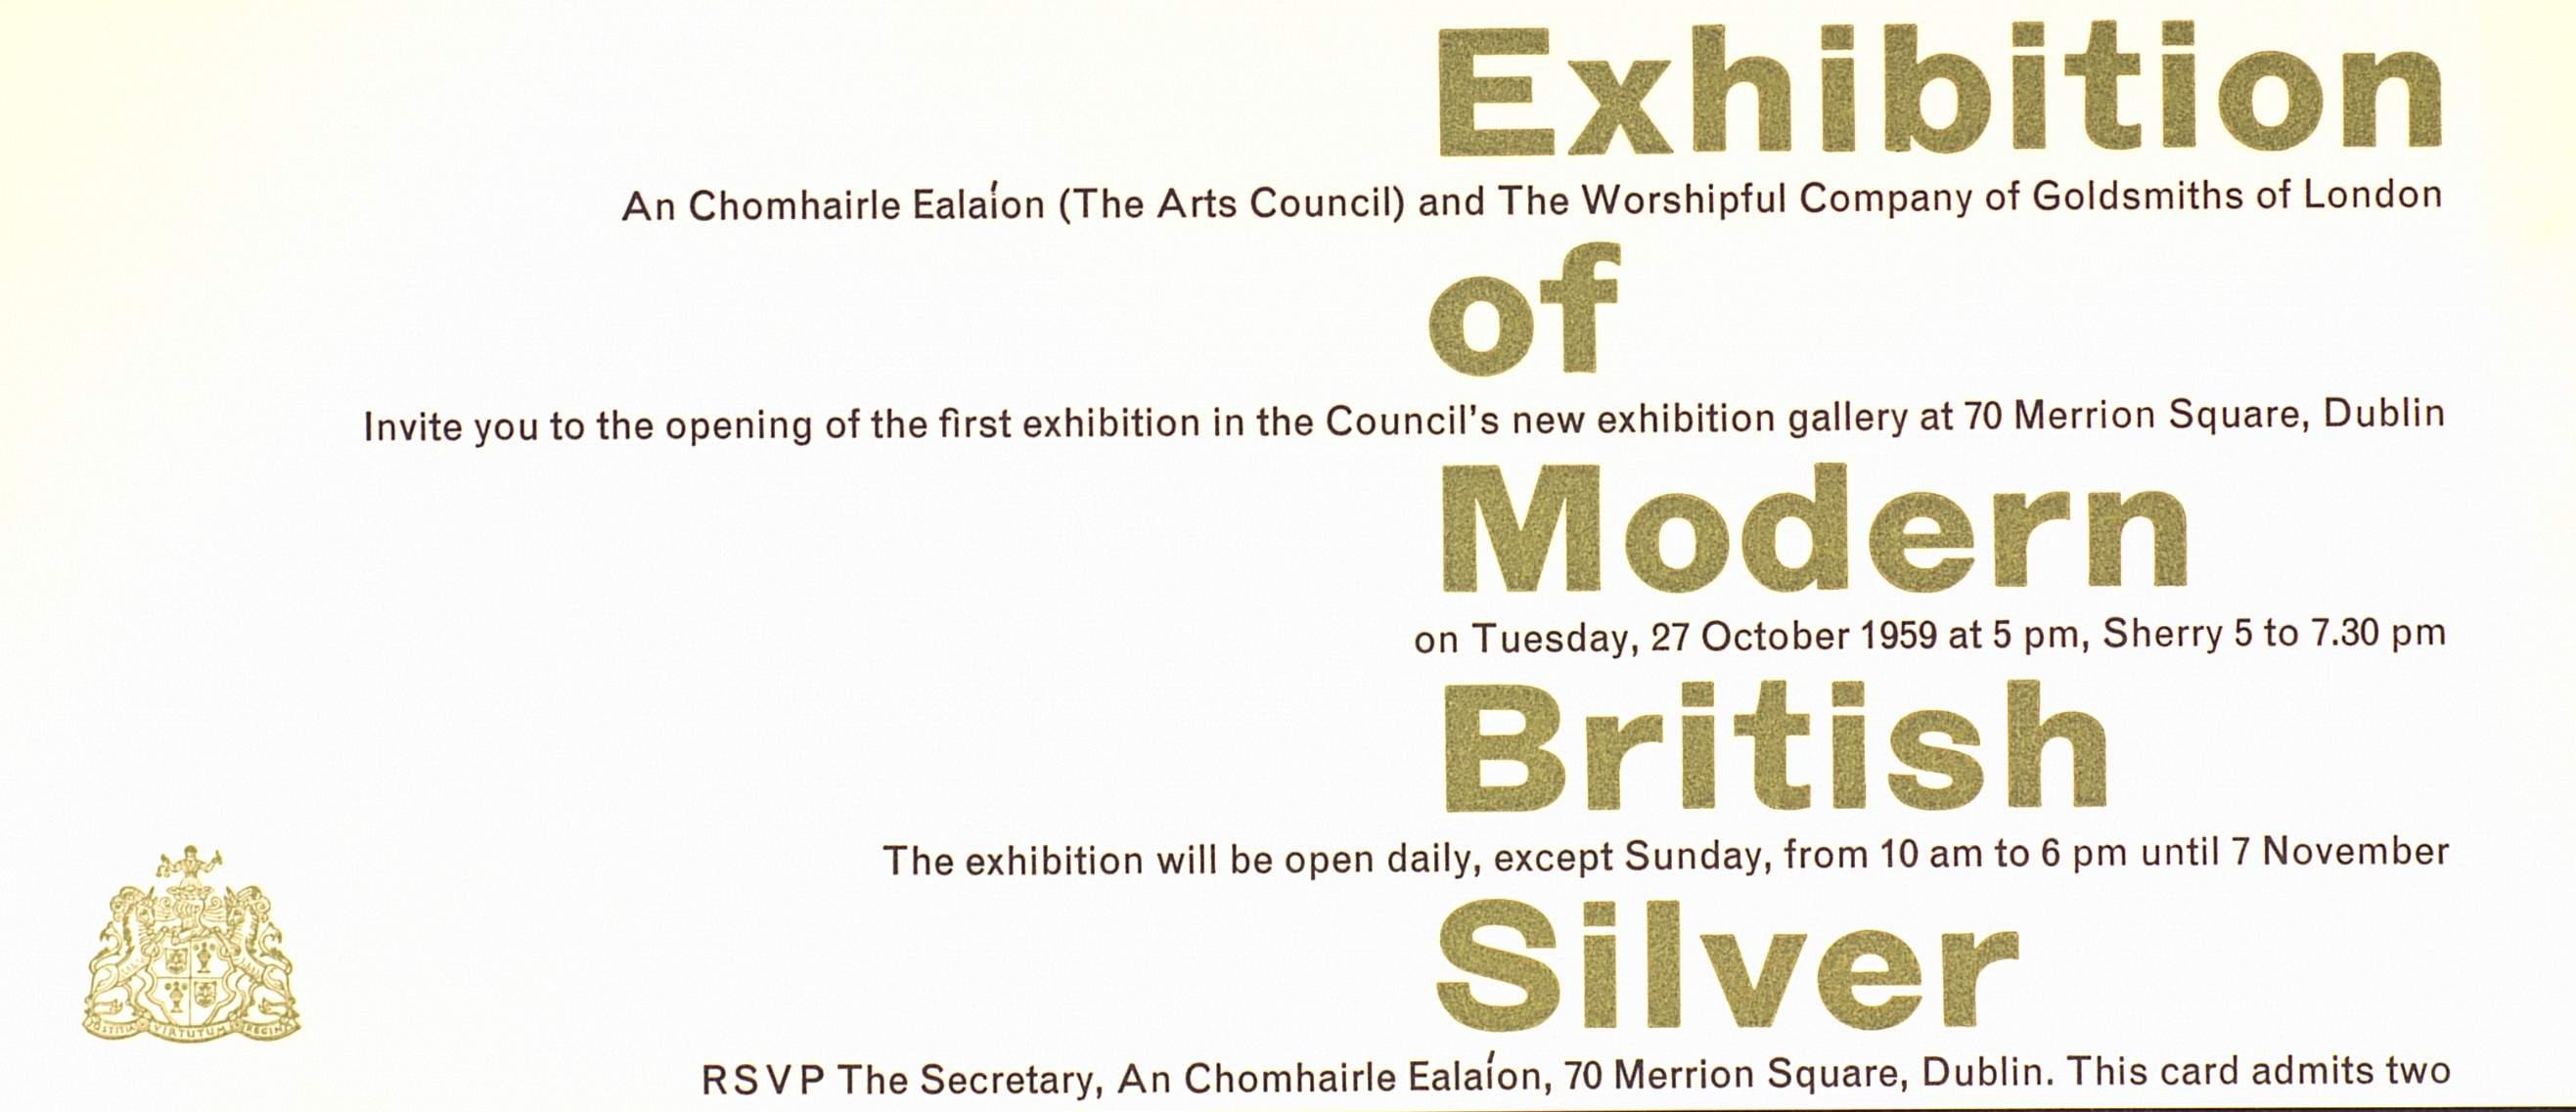 Sample Invitation Letter Art Exhibition. Invitation to Exhibition of Modern British Silver at Dublin A proper institute for the development arts  70 Merrion